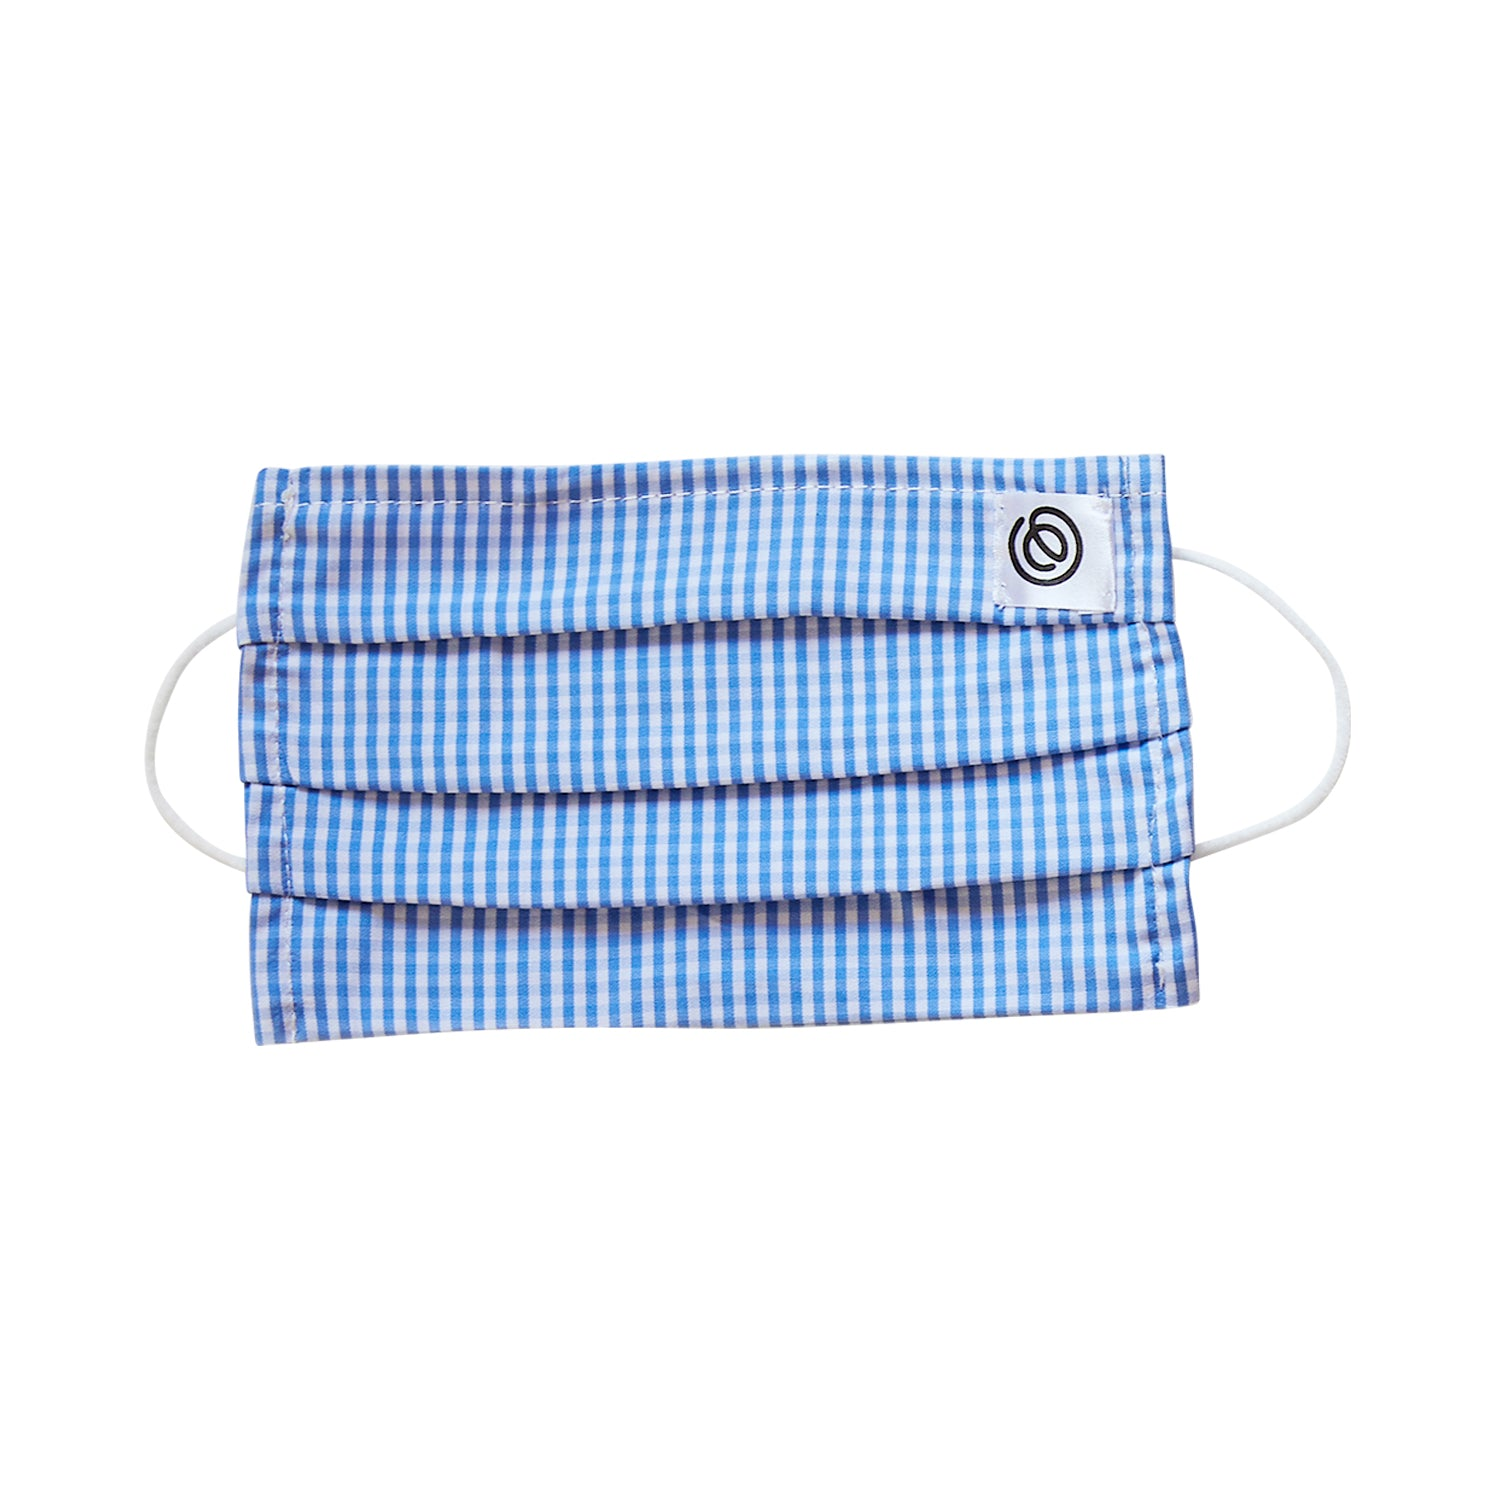 Easy Mask Pleated - Blue Gingham (3 Pack)